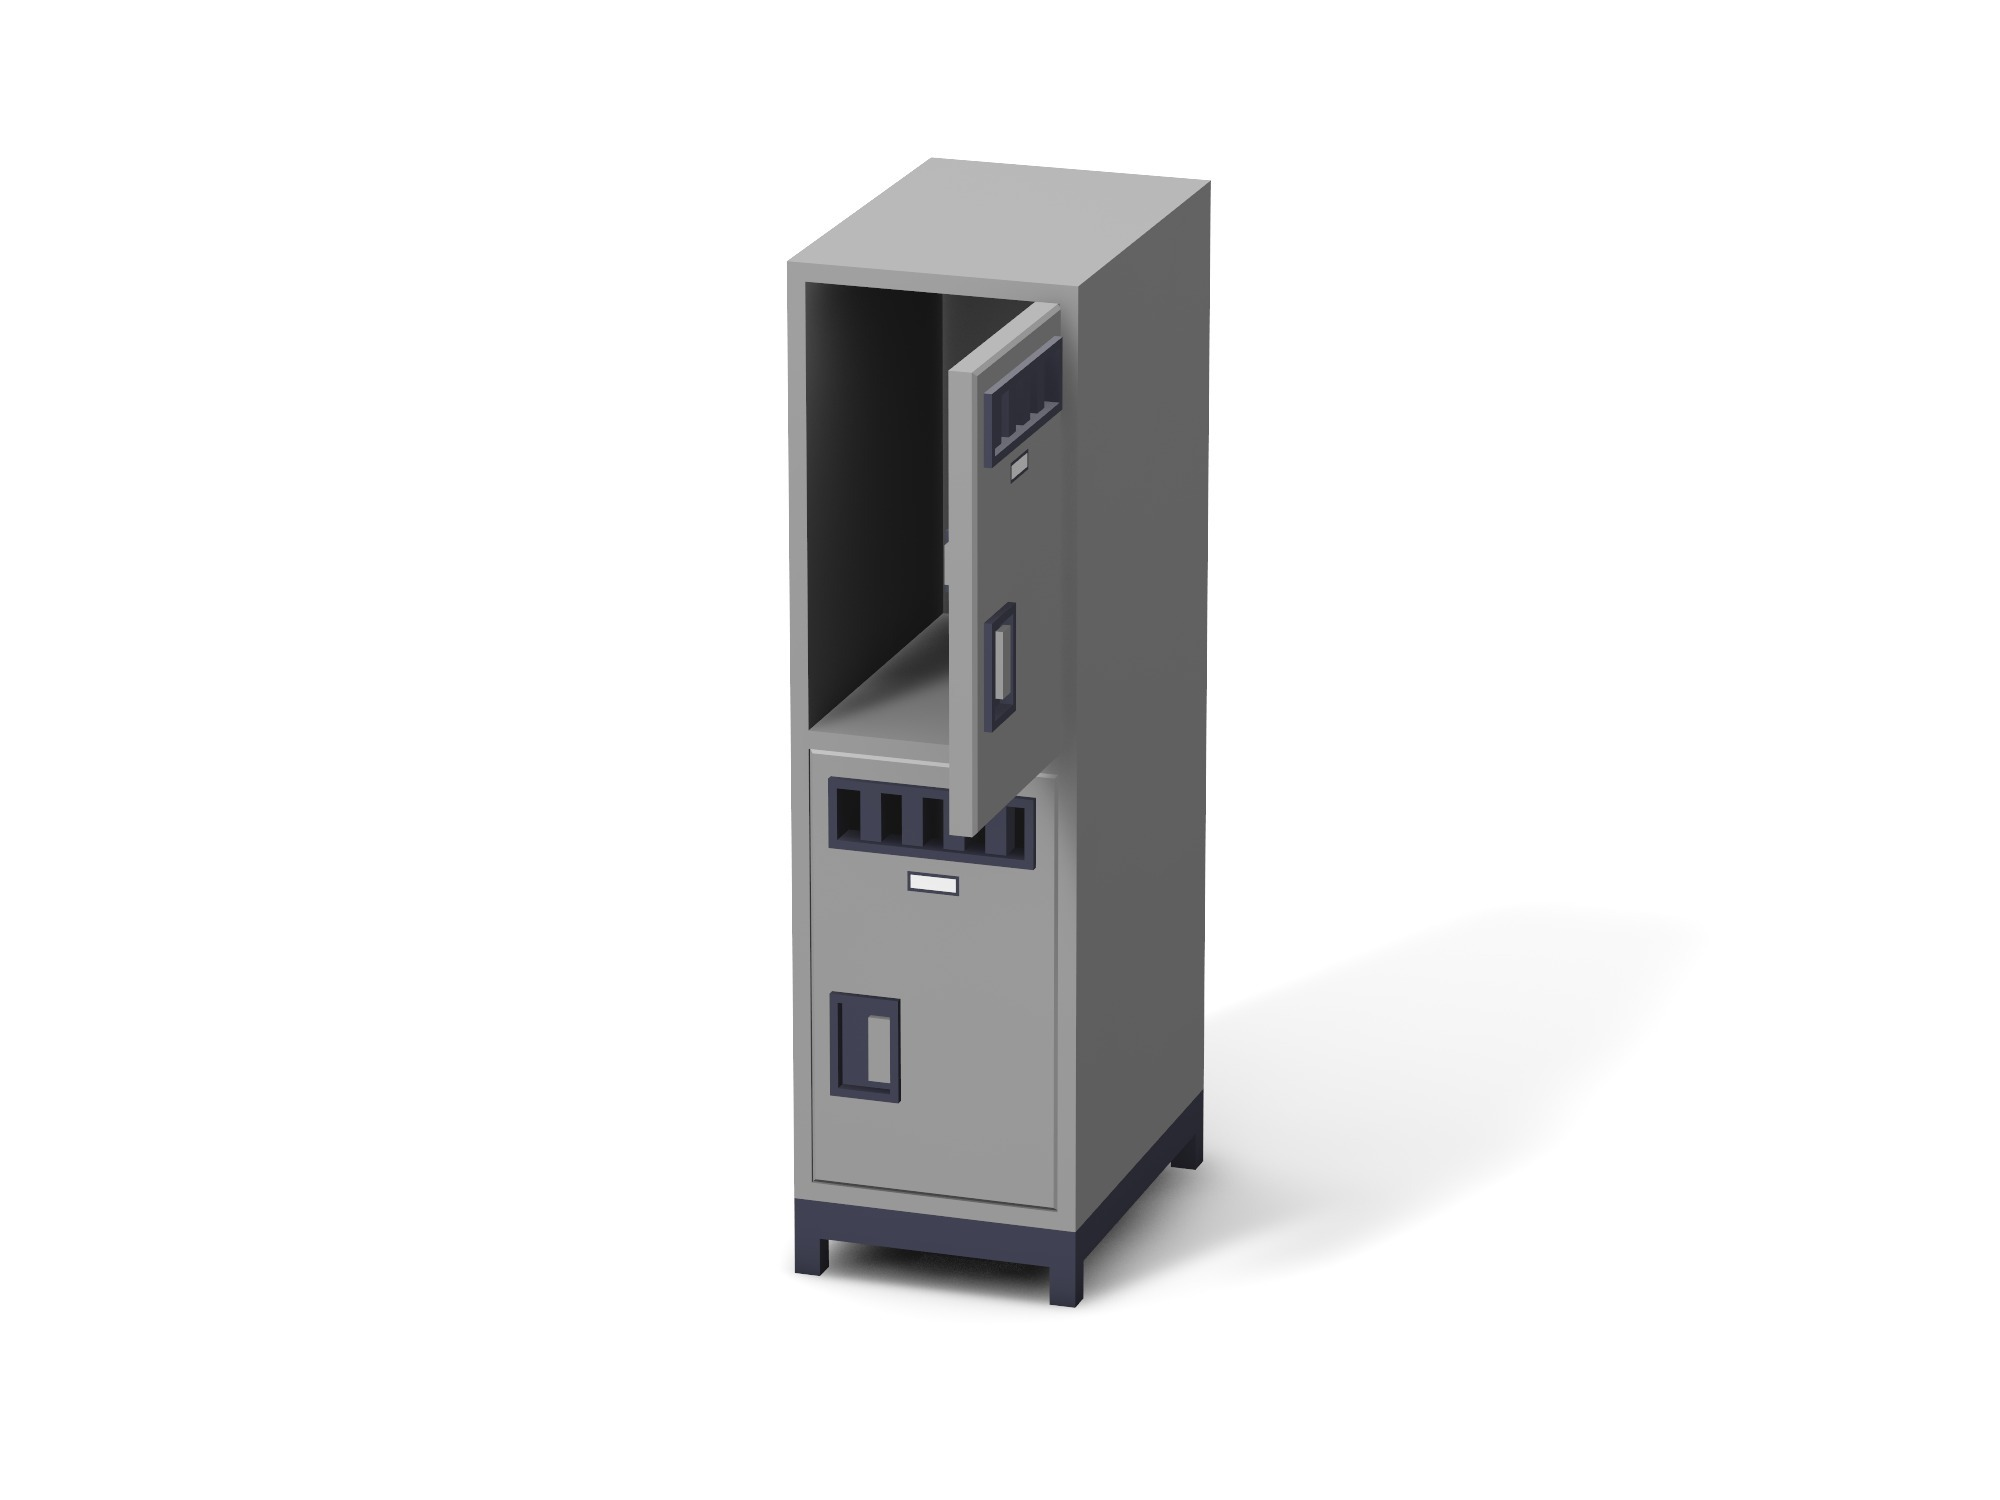 Opened locker low poly - 3D design by Vectary assets Aug 14, 2018